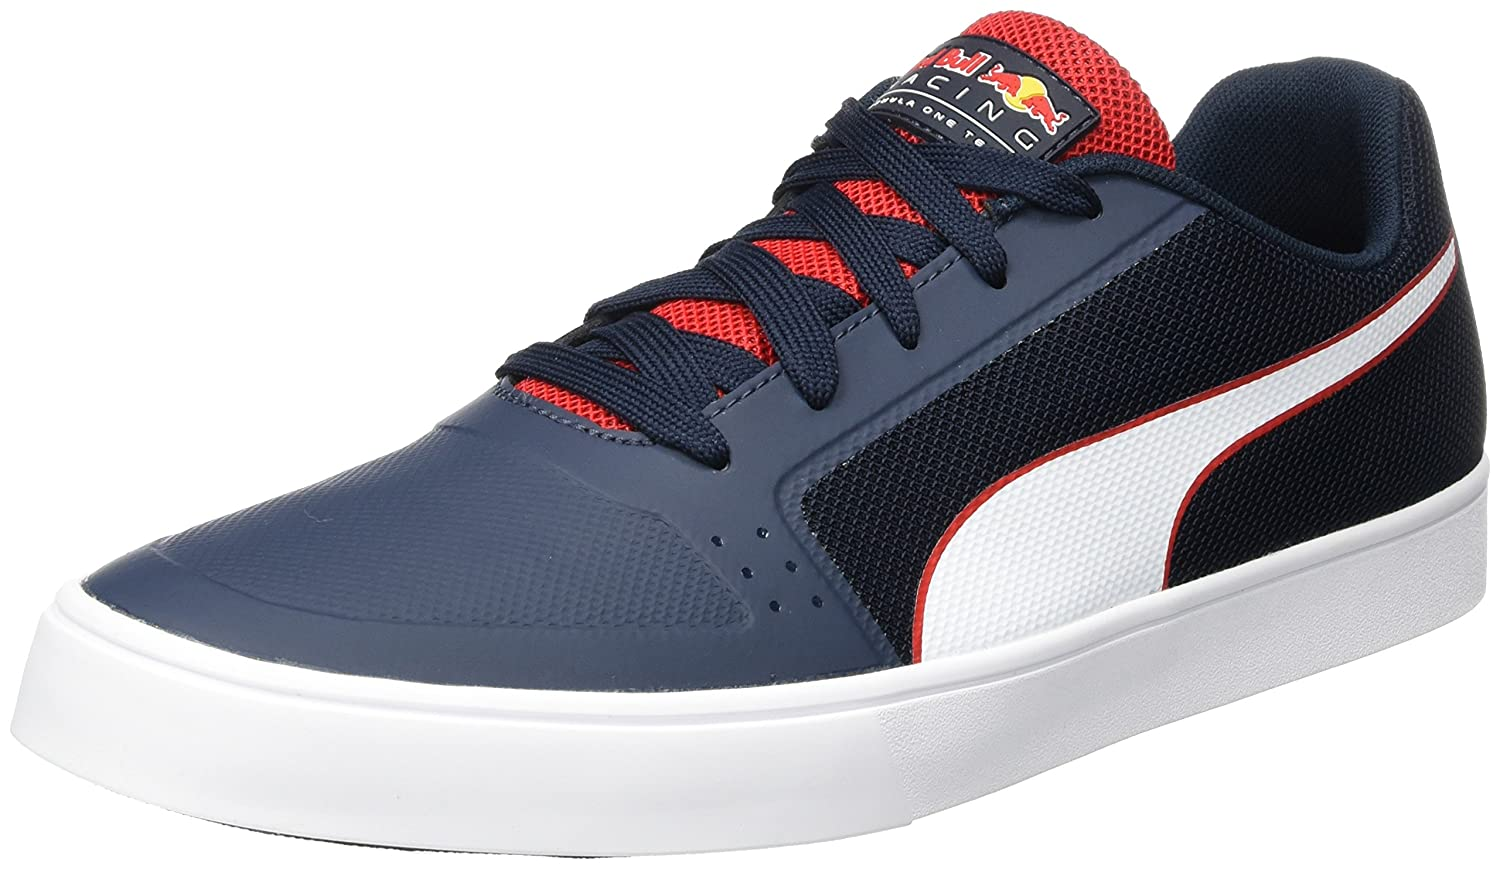 637d7834365 Puma Unisex RBR Wings Vulc Sneakers  Buy Online at Low Prices in India -  Amazon.in